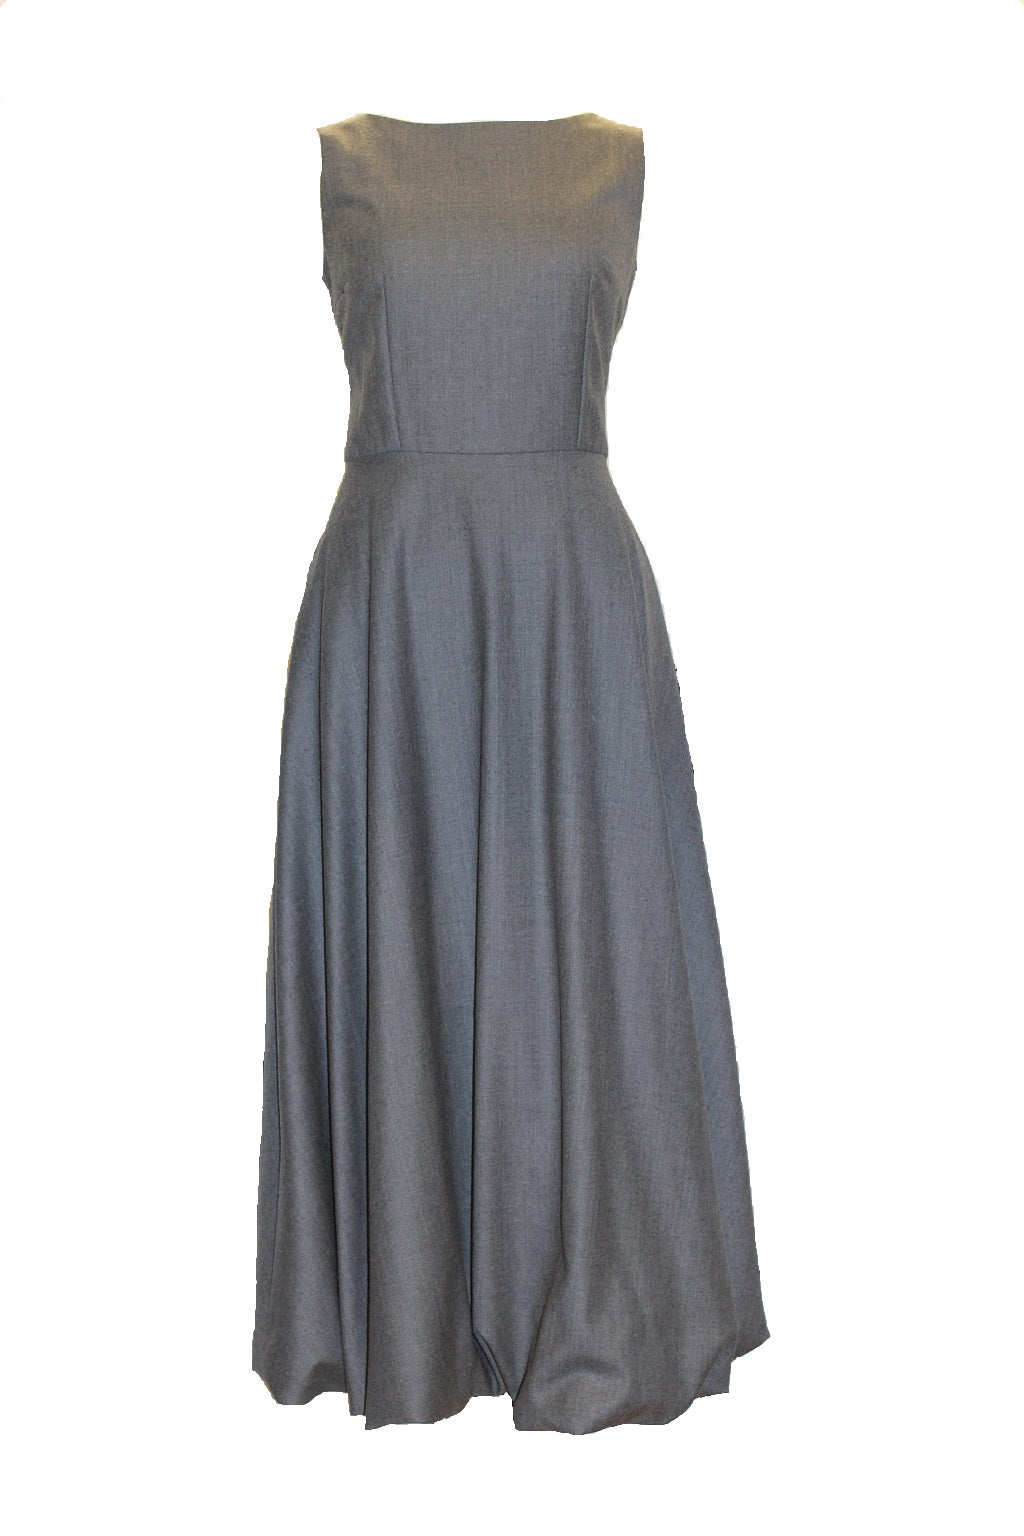 Paris - Wool long dress with bubble hem